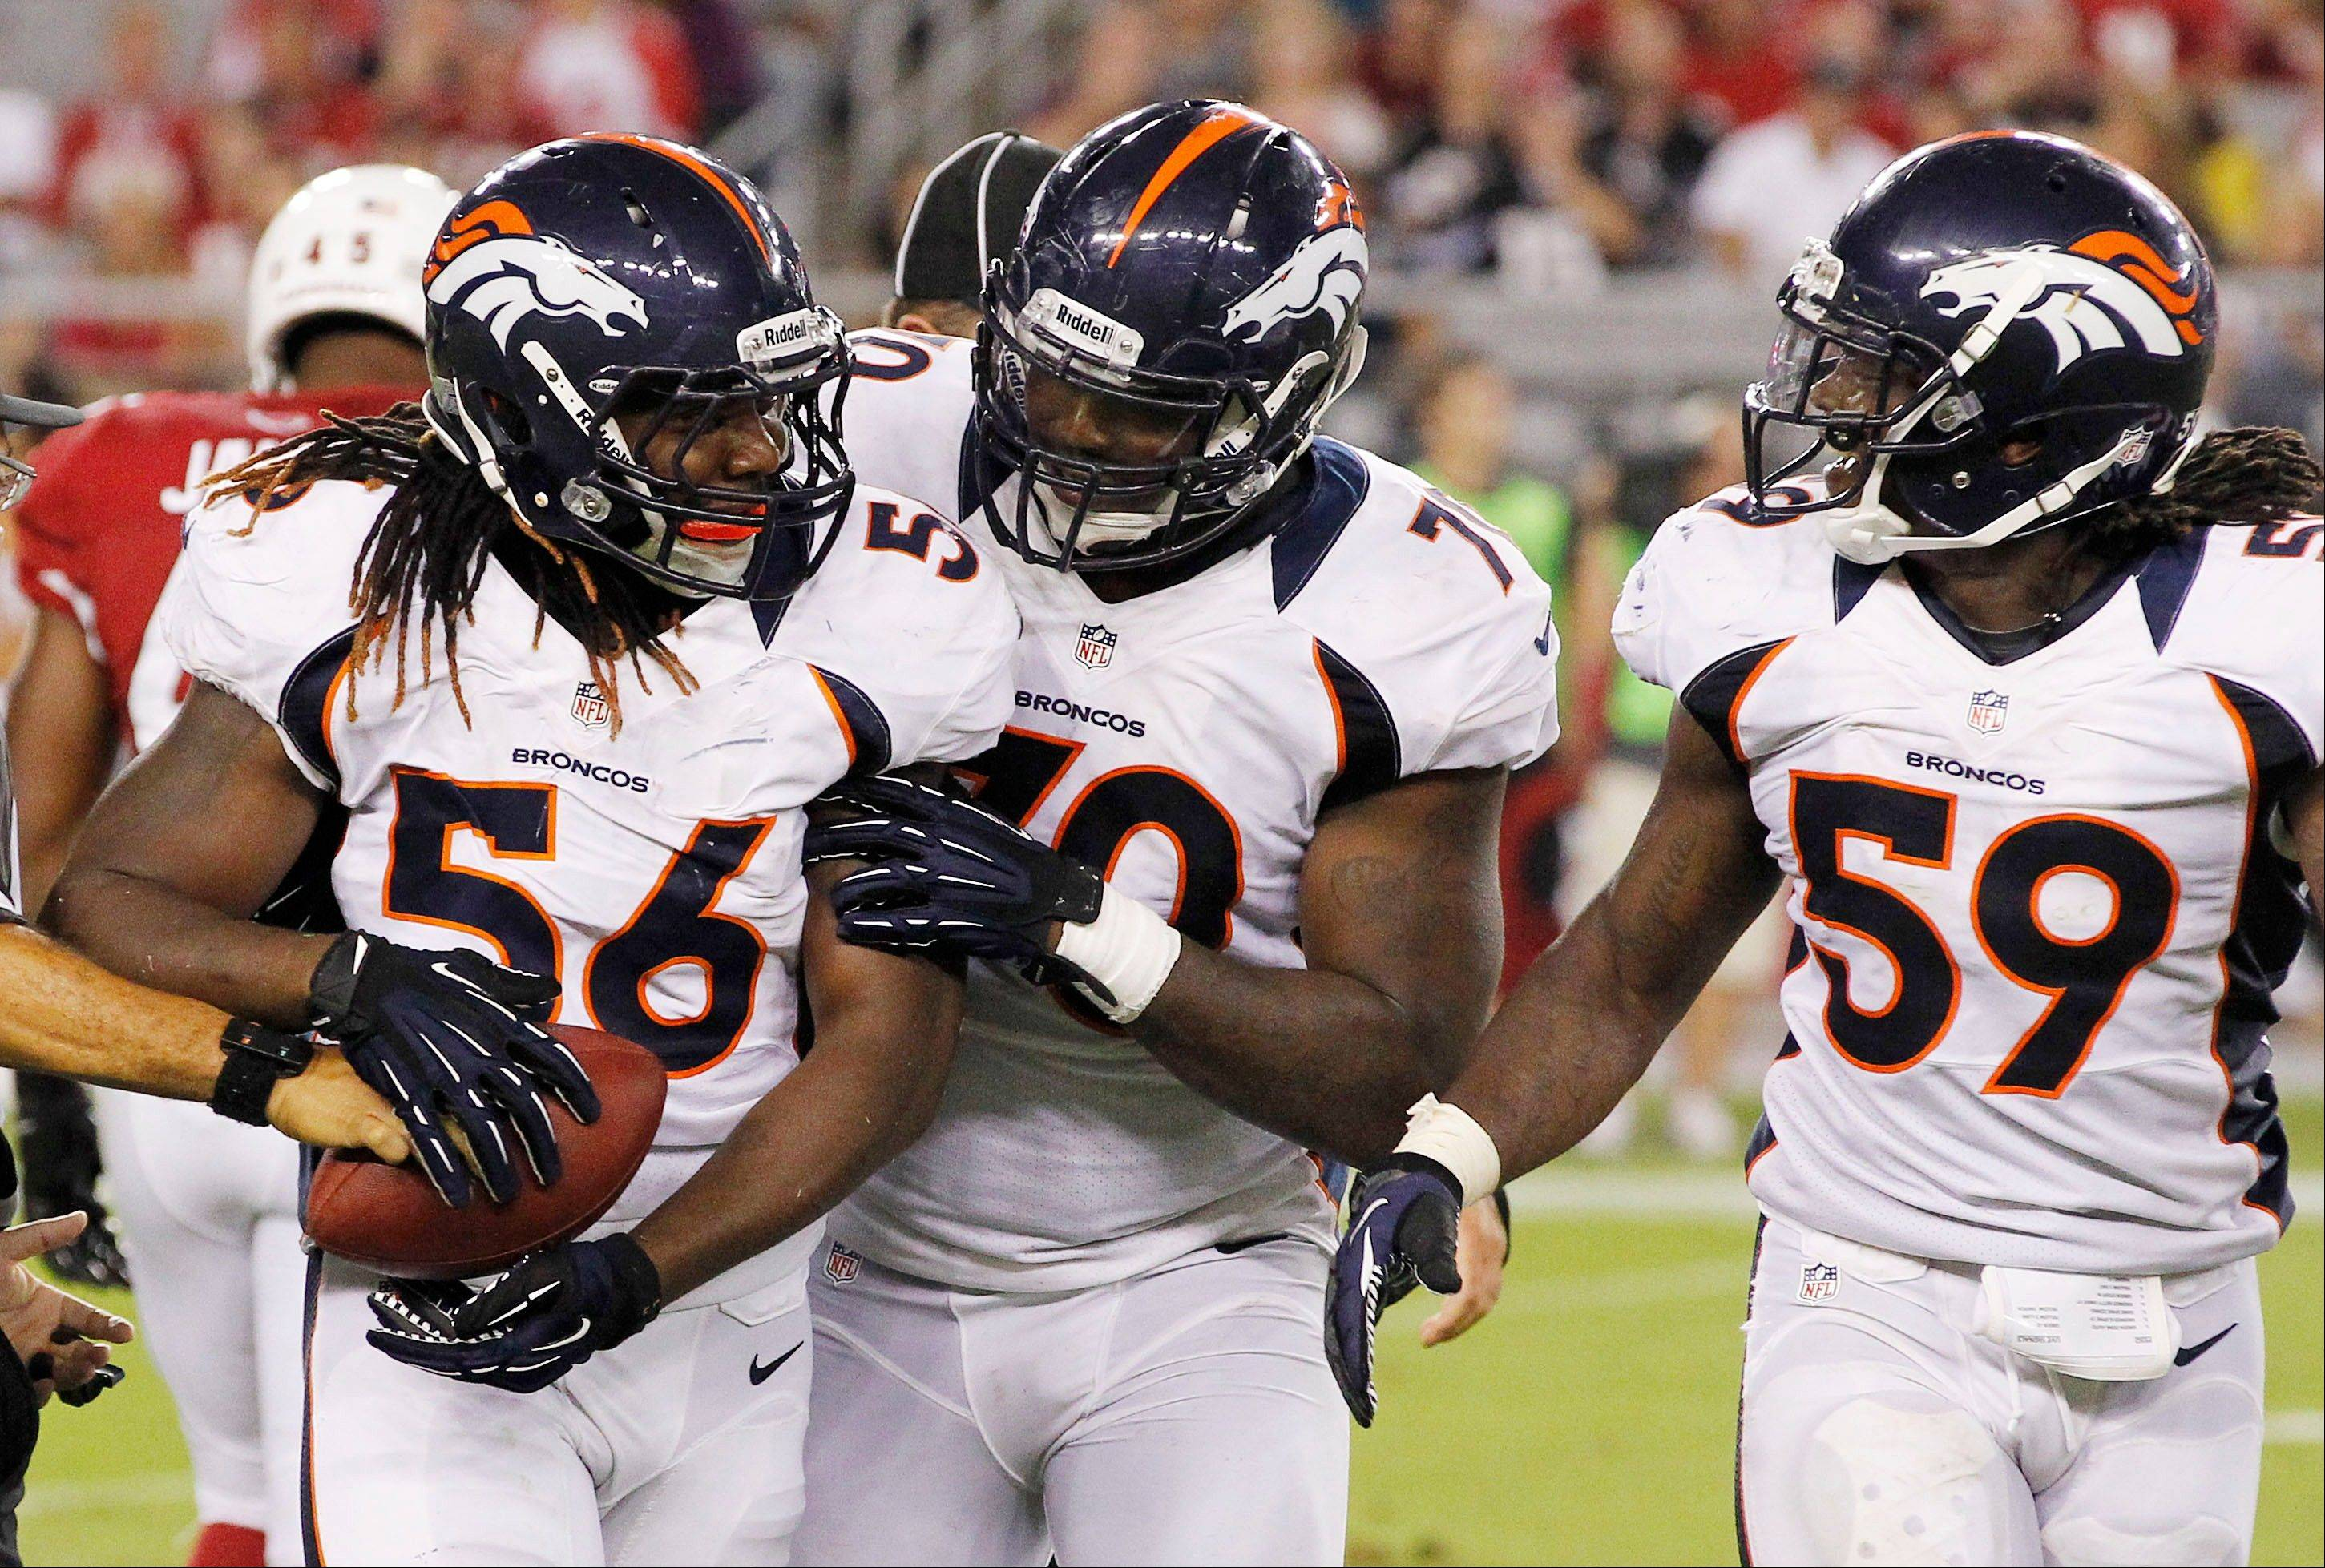 Denver's Nate Irving (56) celebrates his fumble recovery against the Arizona Cardinals with teammates Malik Jackson and Danny Trevathan (59) during the first half of a preseason game Thursday in Glendale, Ariz.